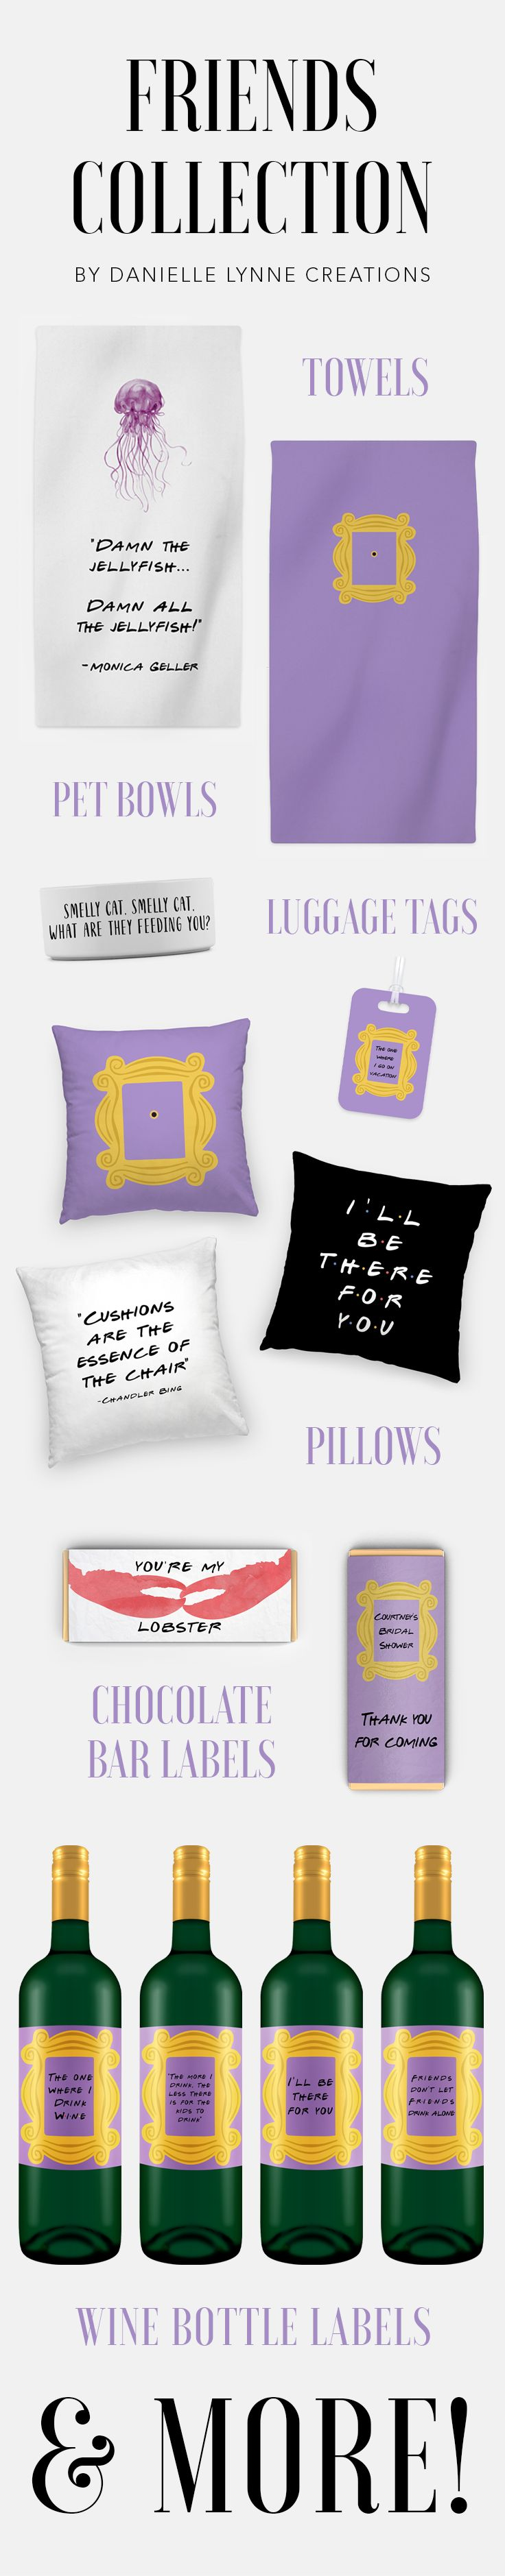 """Friends TV show themed gift items! Give your FRIENDS pillowcases, beach and bath towels, luggage tags, and even a food dish for their """"smelly cat"""". For bridal showers, bachelorette parties and weddings, there is custom wine bottle and chocolate bar labels!"""